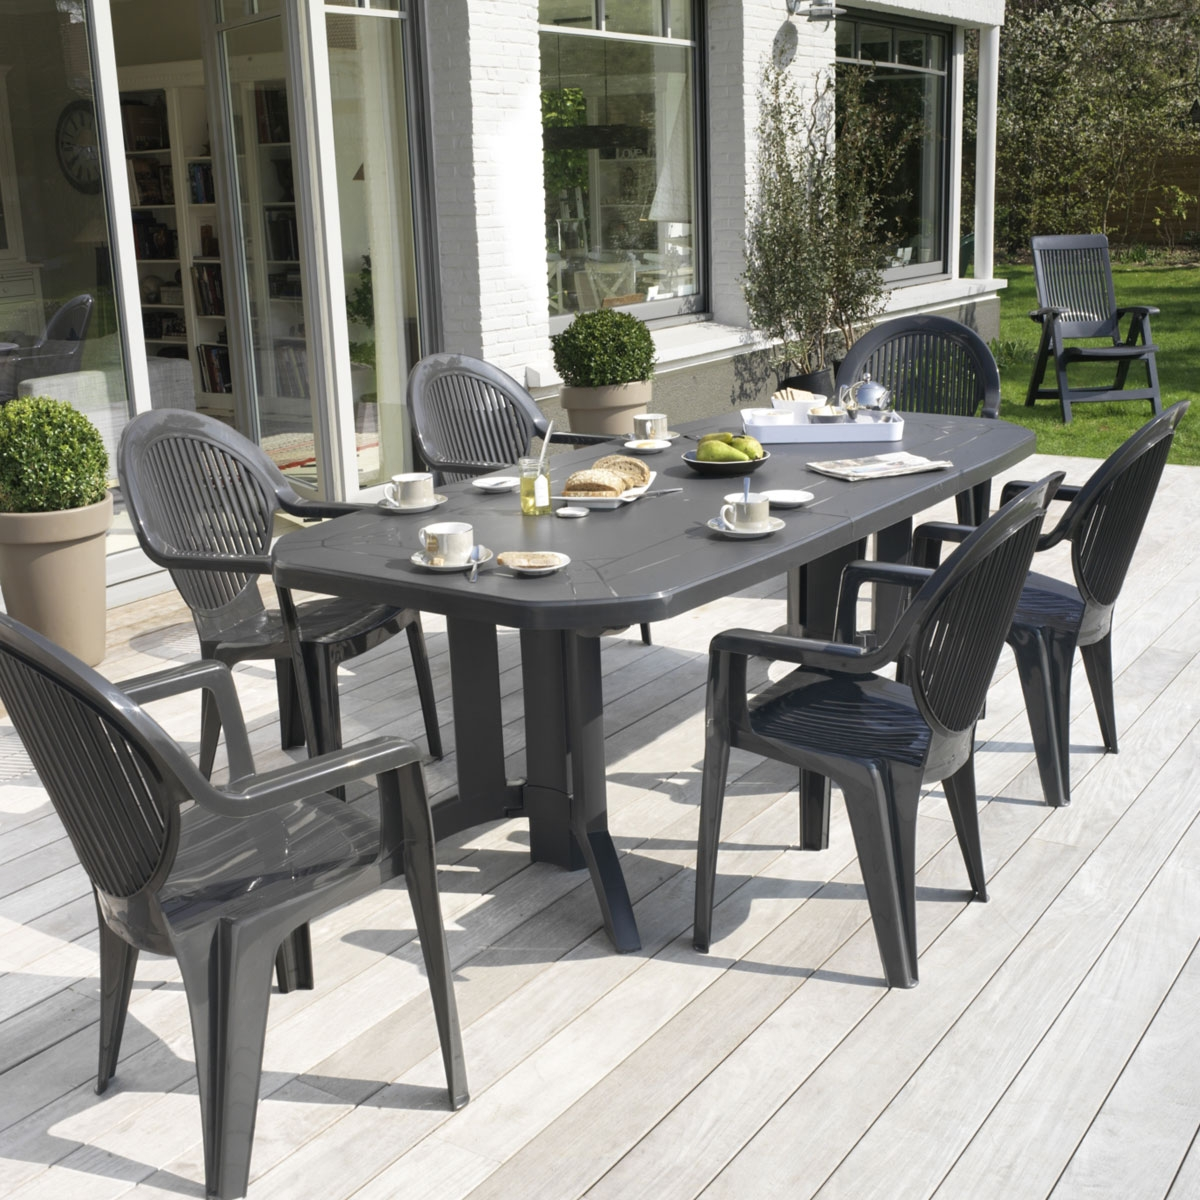 Table de jardin ovale design grosfillex vega 220x100x72 for Table jardin design